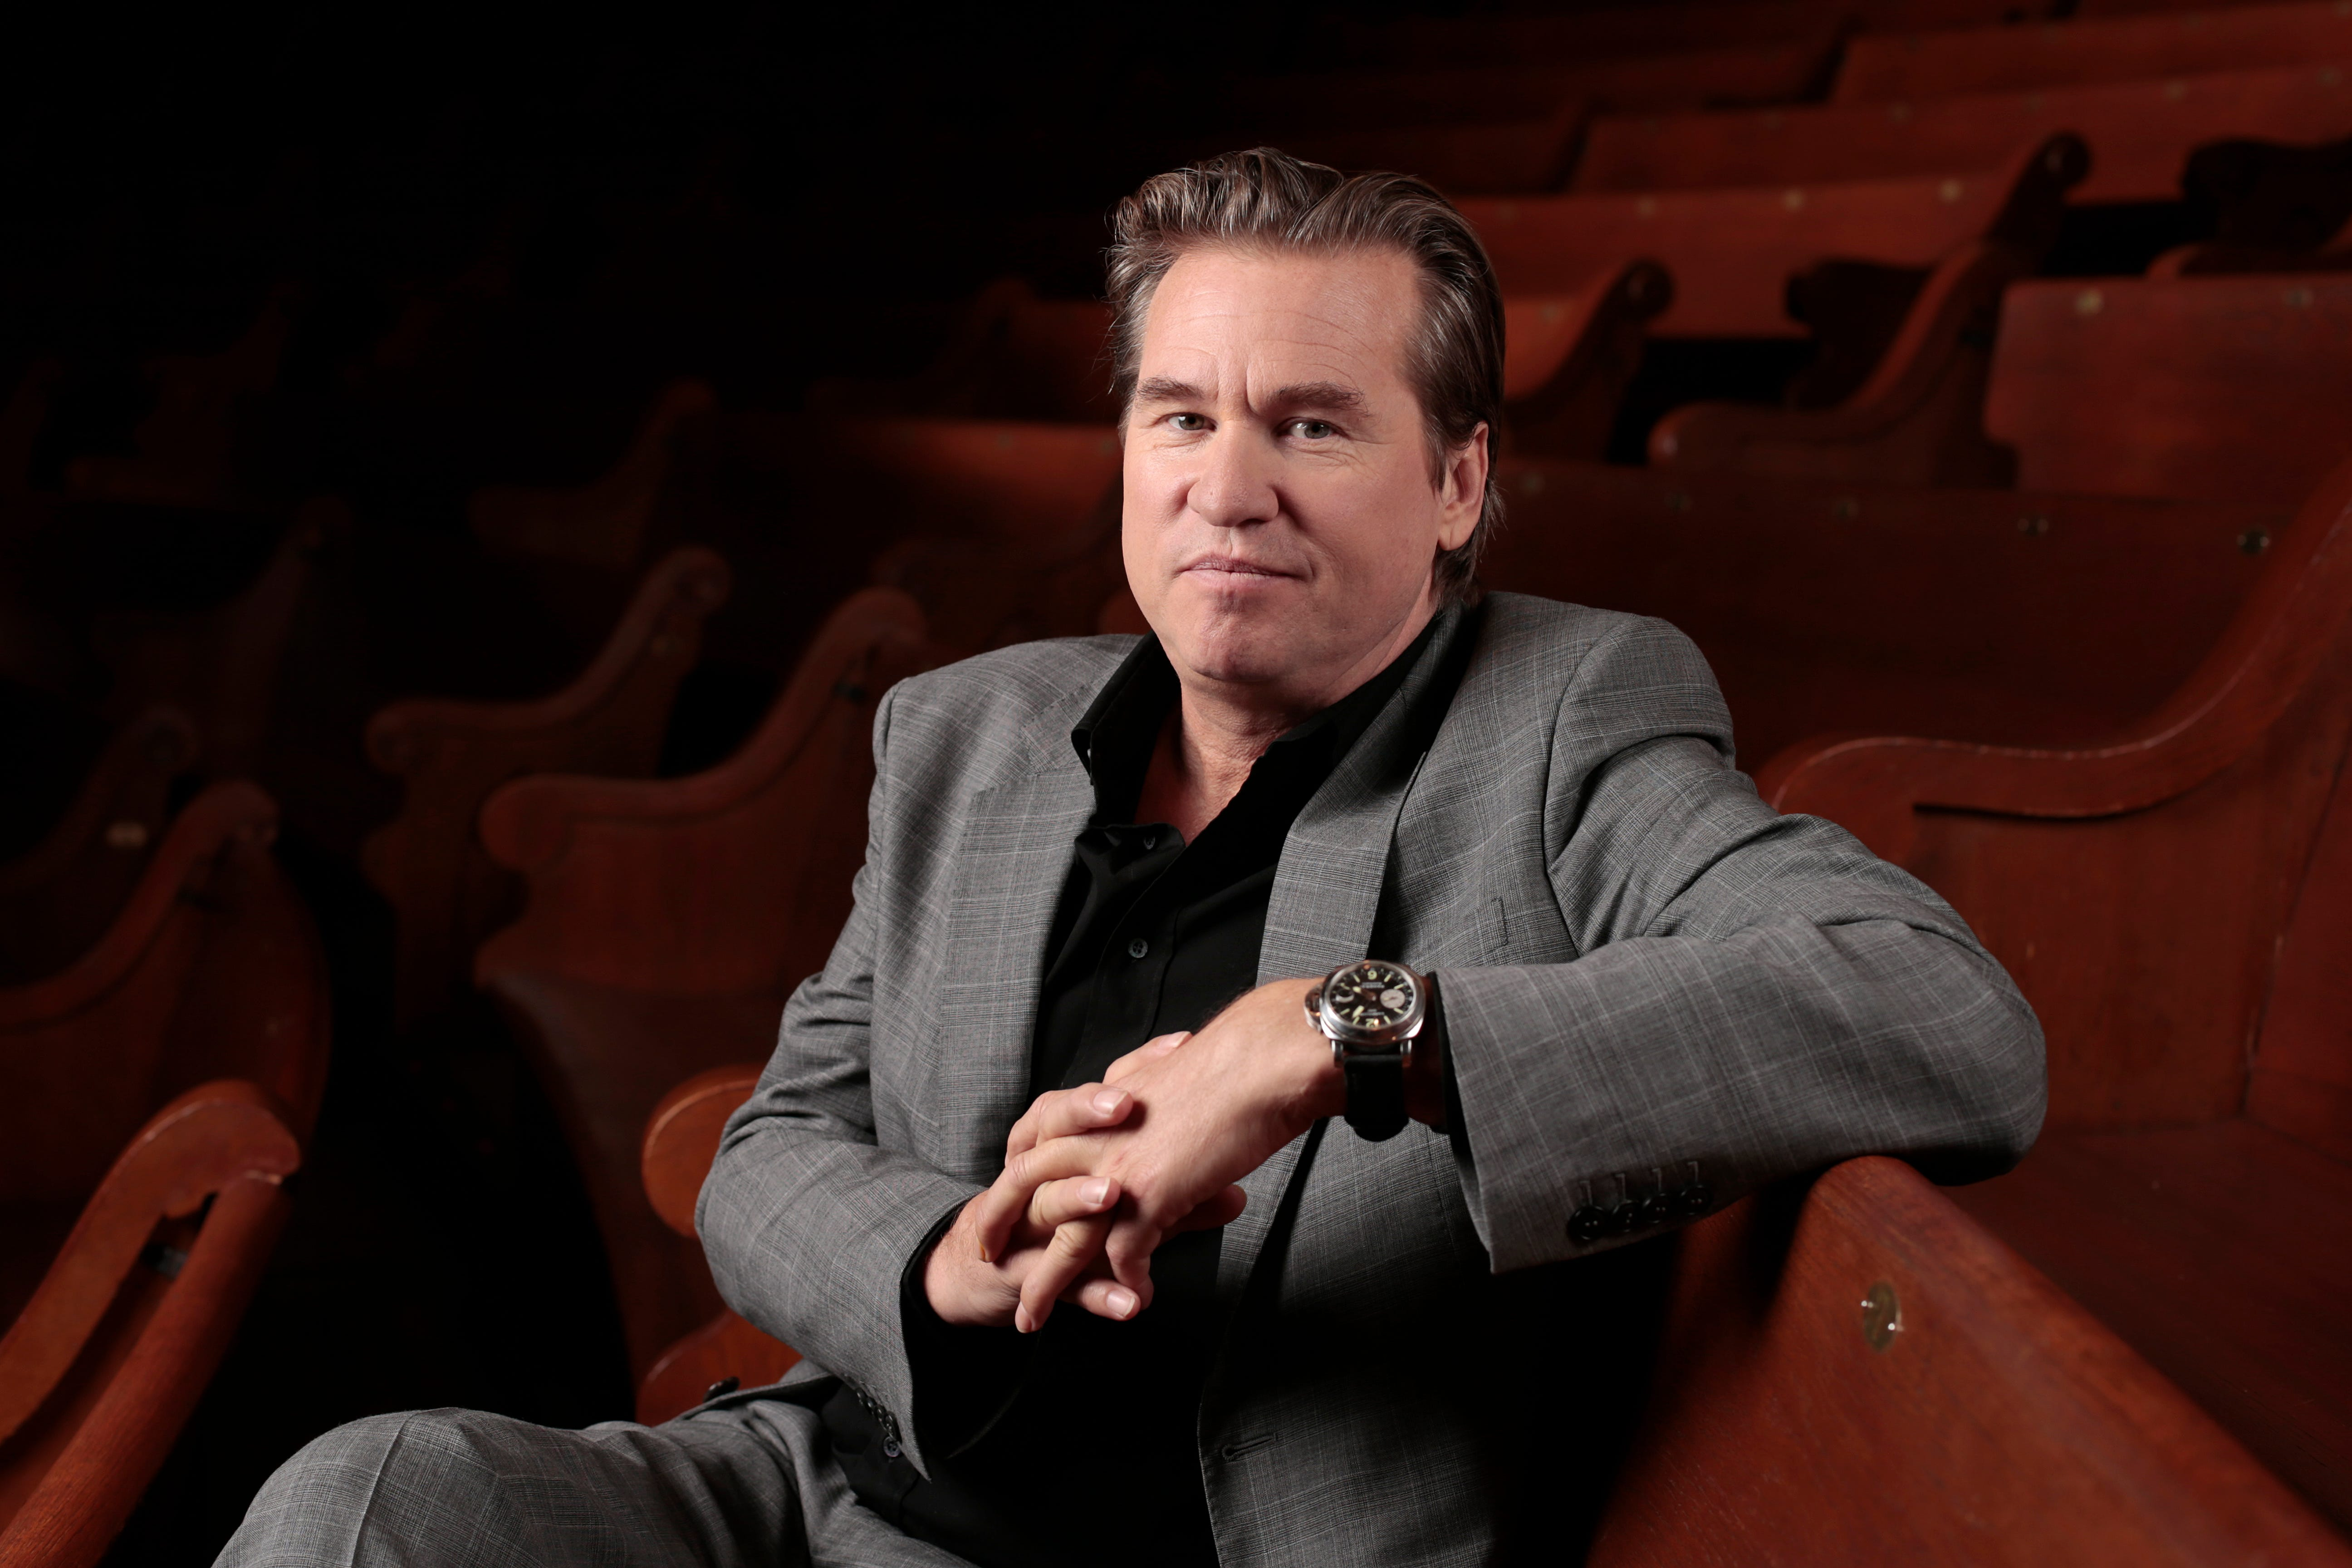 Val Kilmer reflects on life before cancer: 'I was too serious'